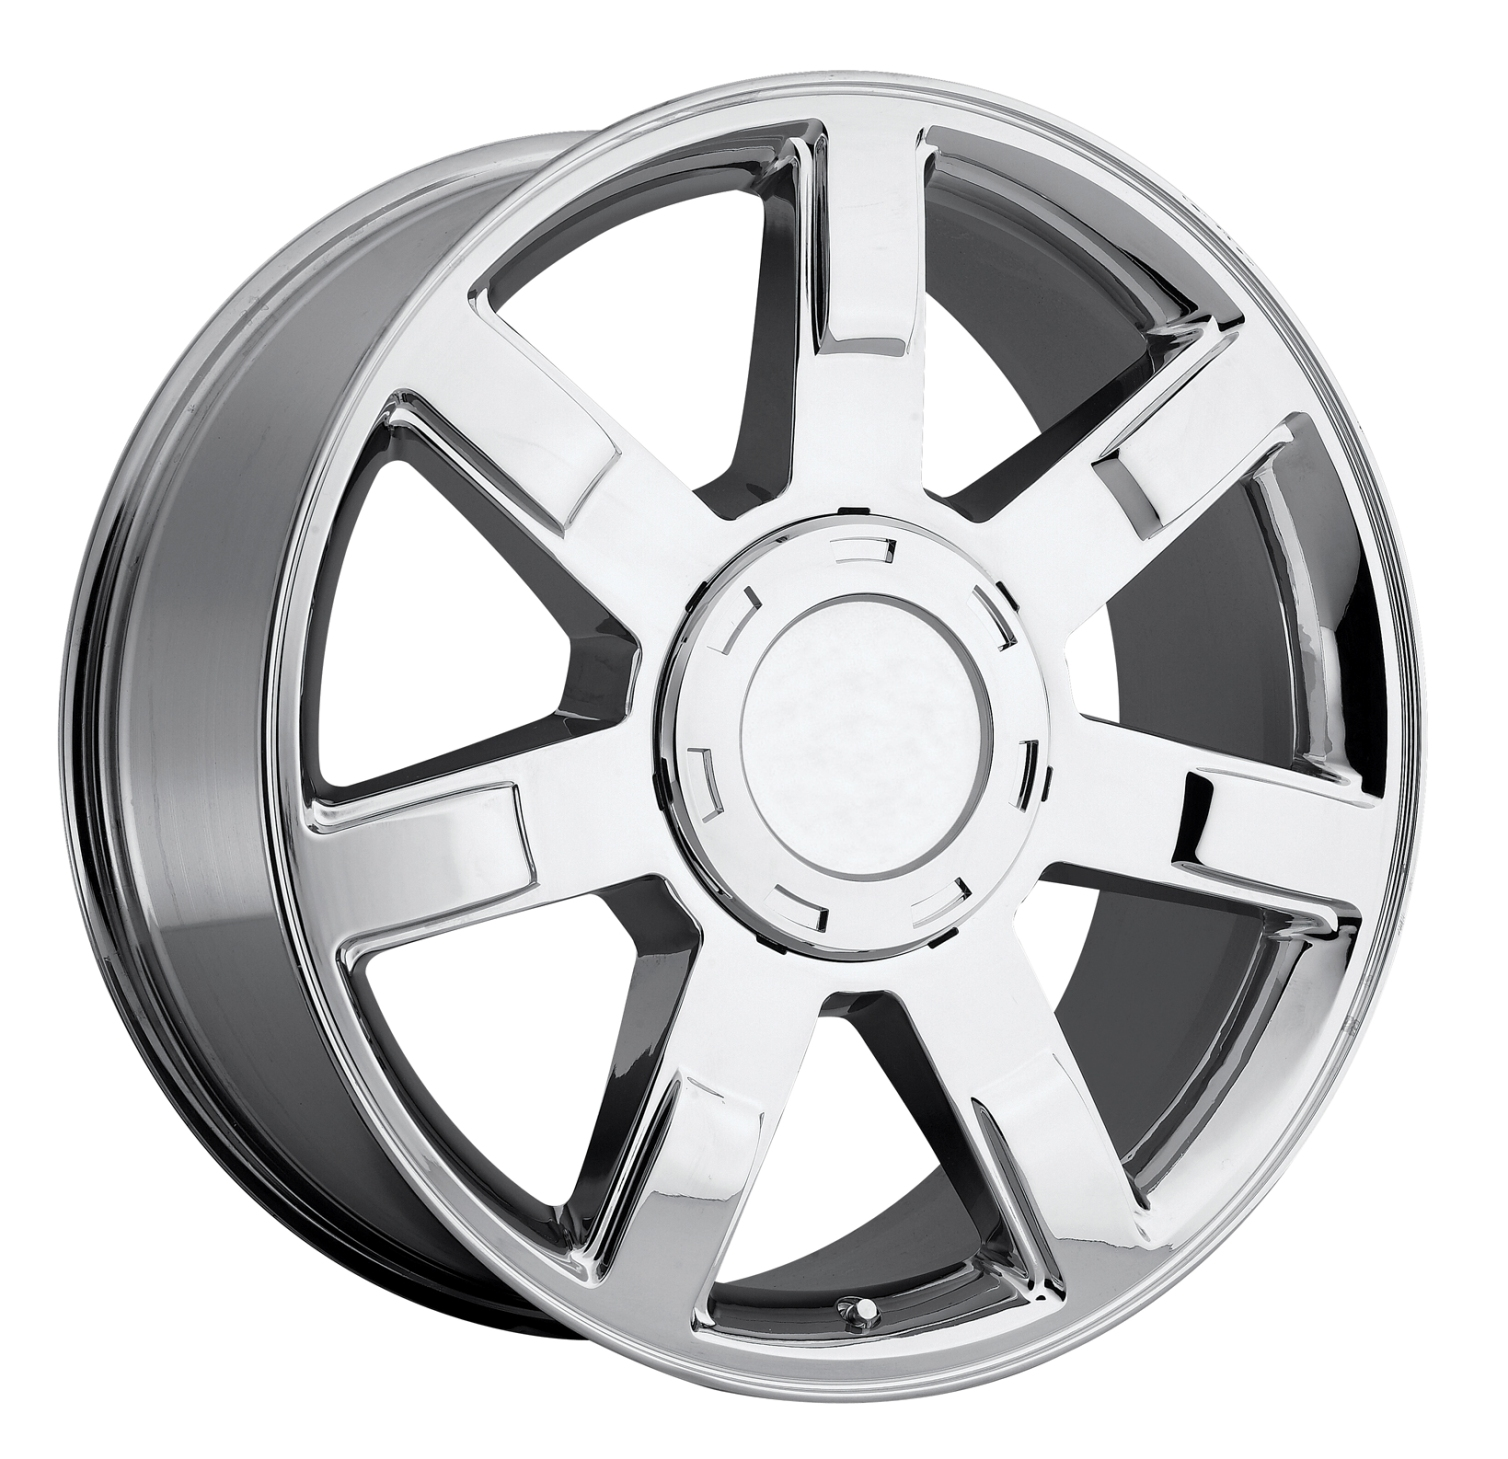 Cadillac Escalade 2007-2012 20x9 6x5.5 +15 - Wheel - Chrome With Cap